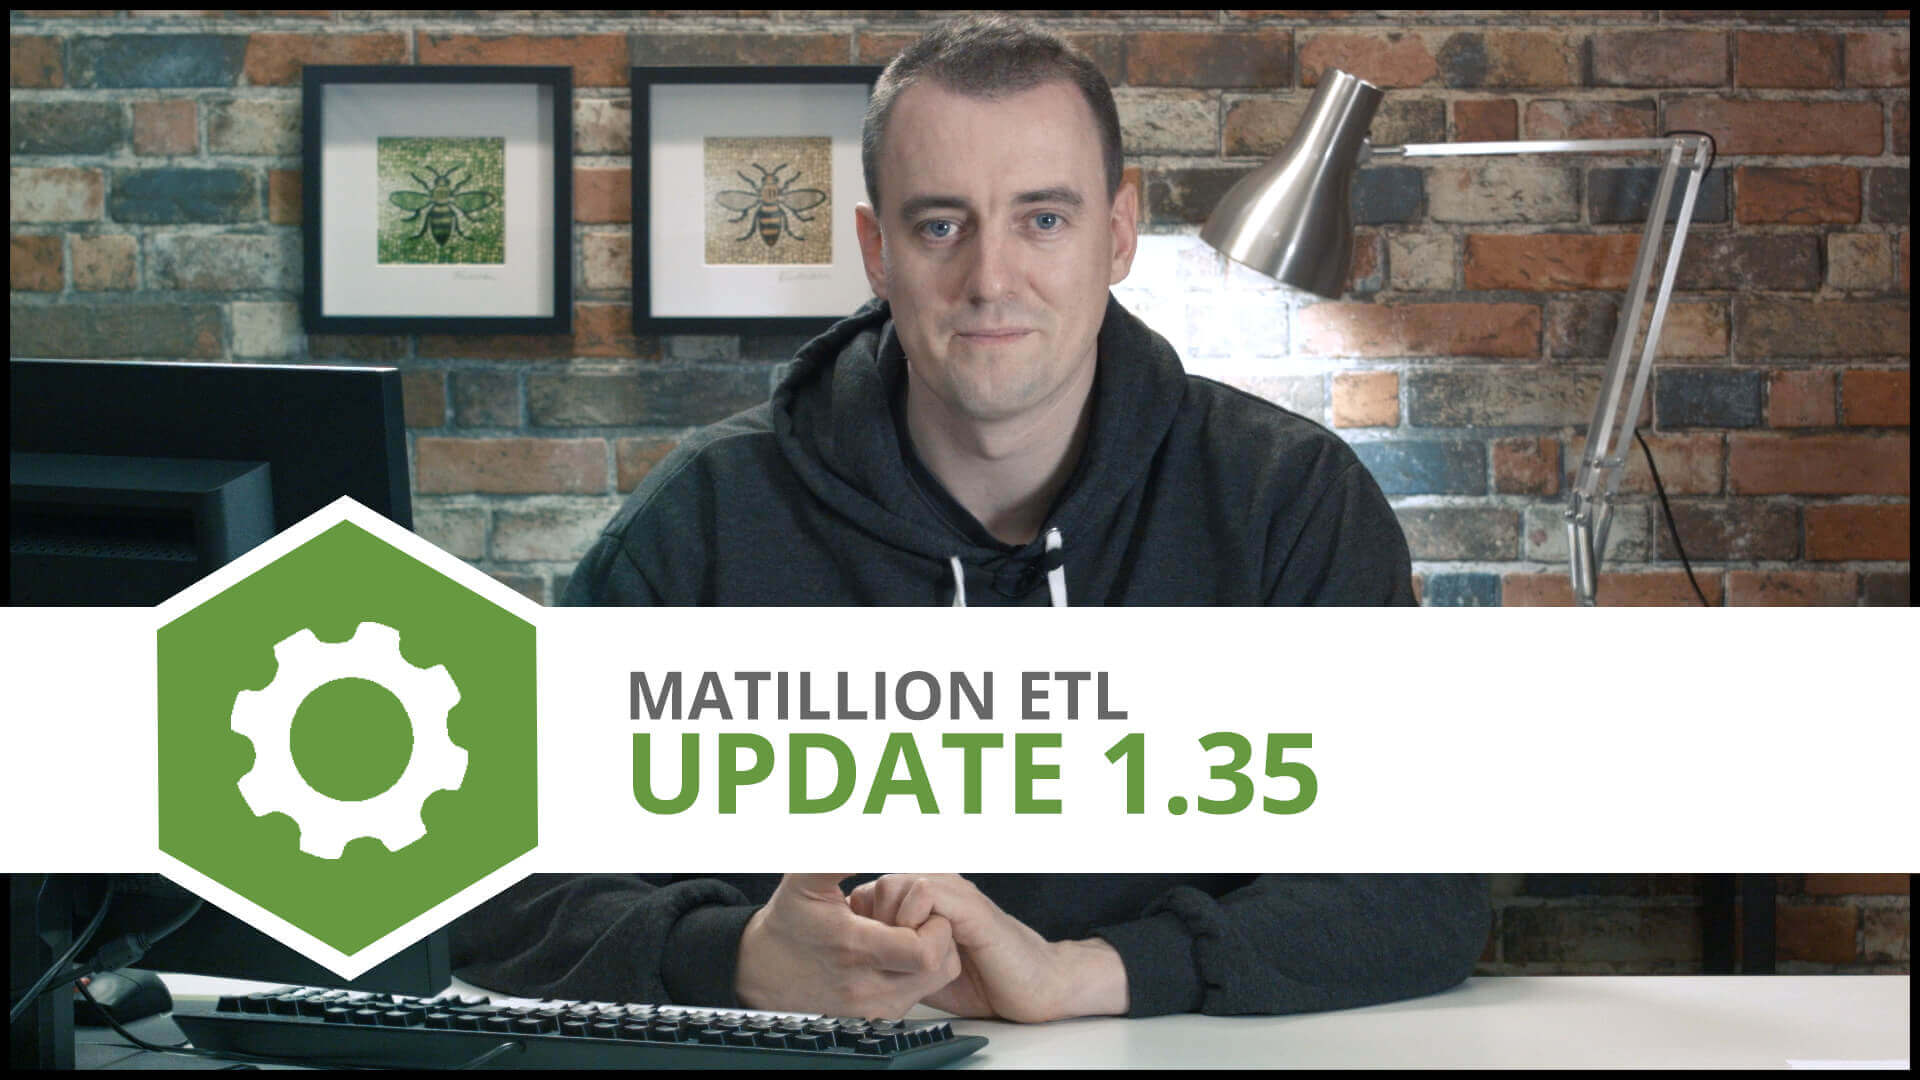 Update 1.35 | Matillion ETL